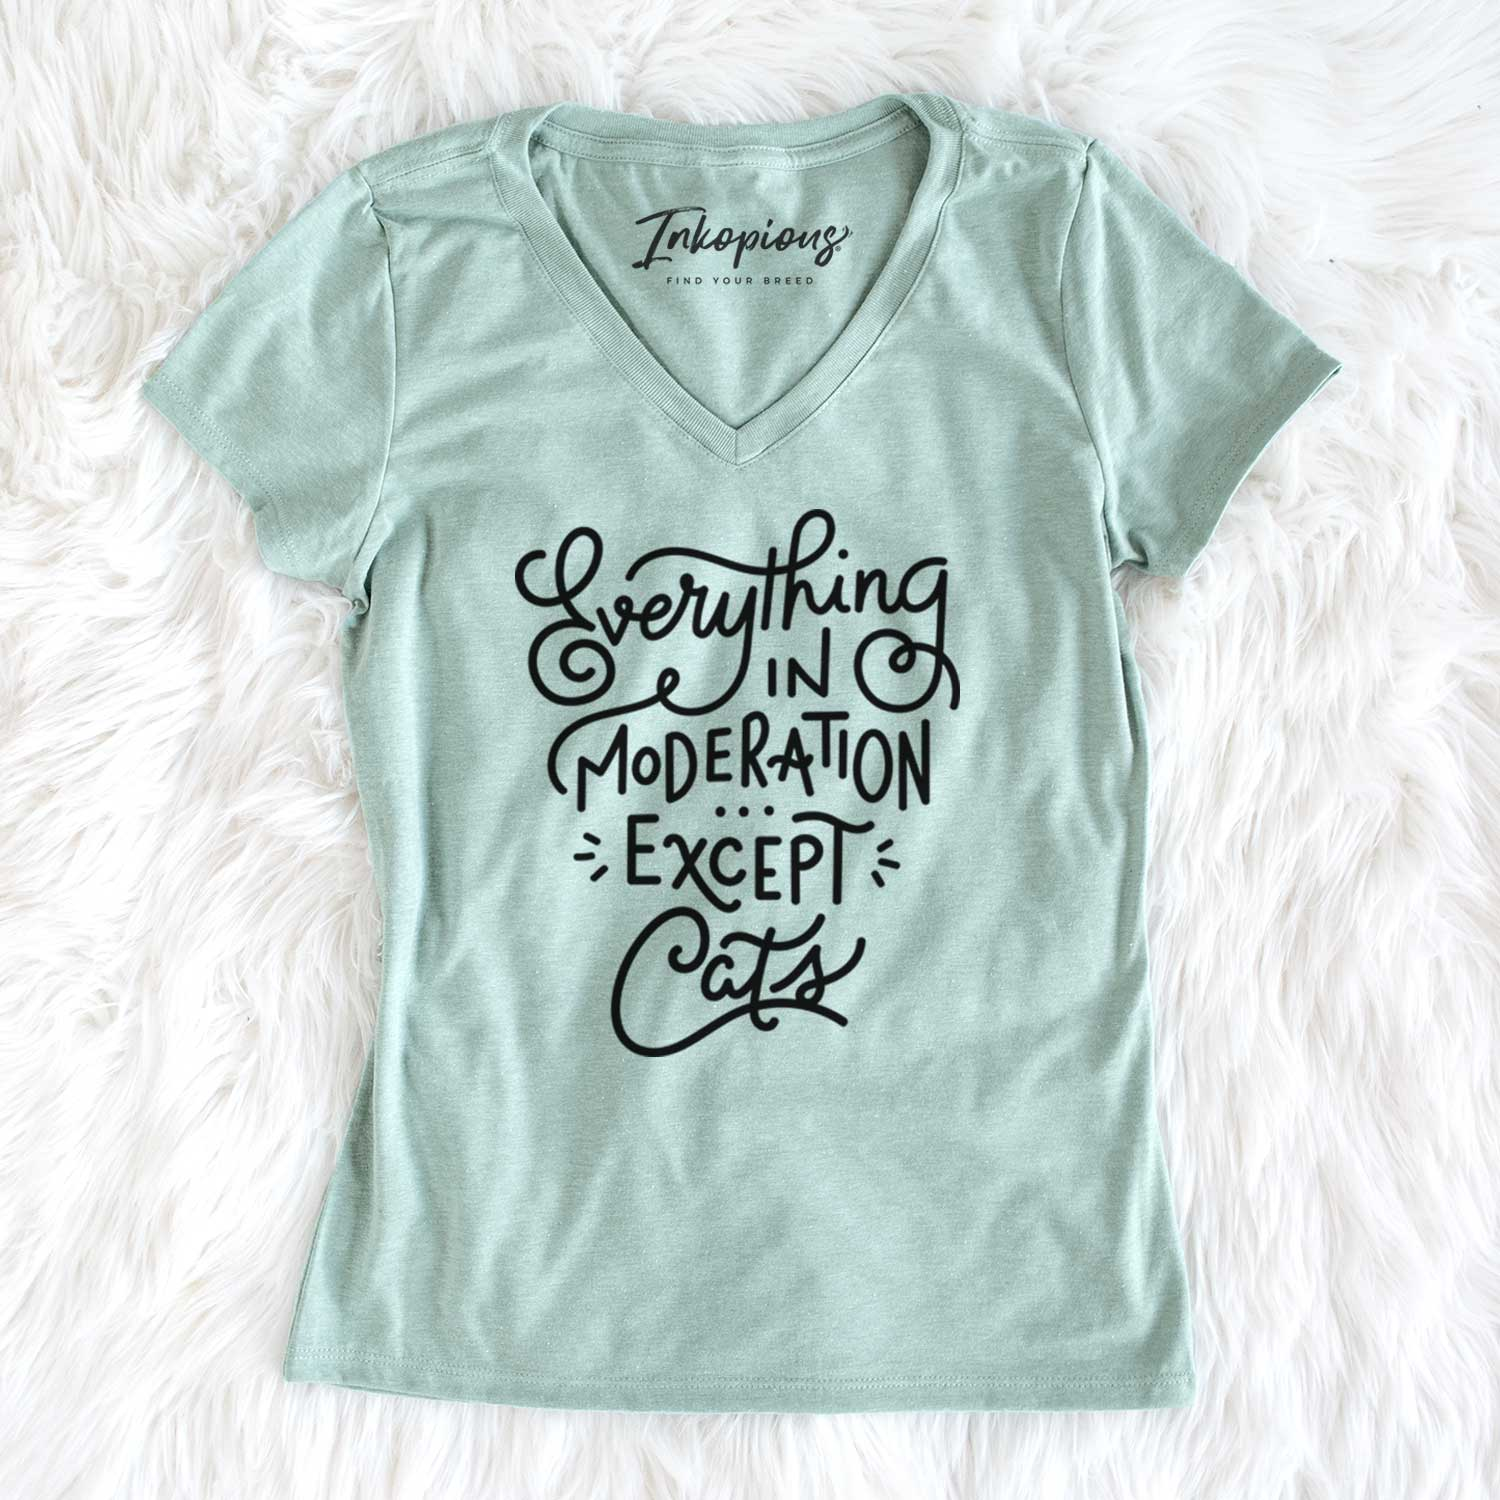 Everything in Moderation - Except Cats  - Women's Perfect V-neck Shirt